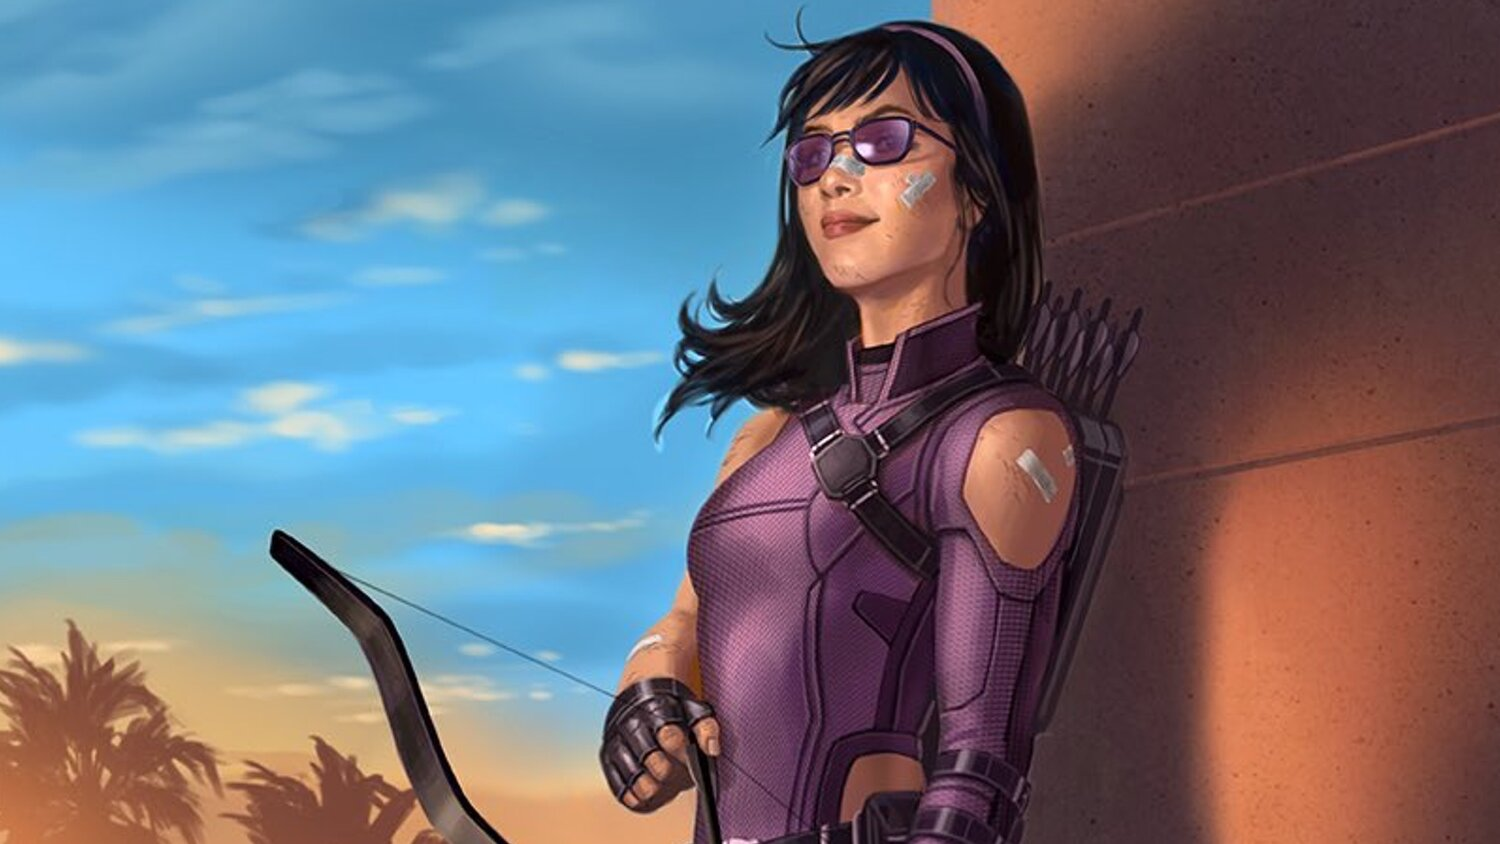 Official Concept Art Shared For Marvel's HAWKEYE Series Featuring Kate Bishop